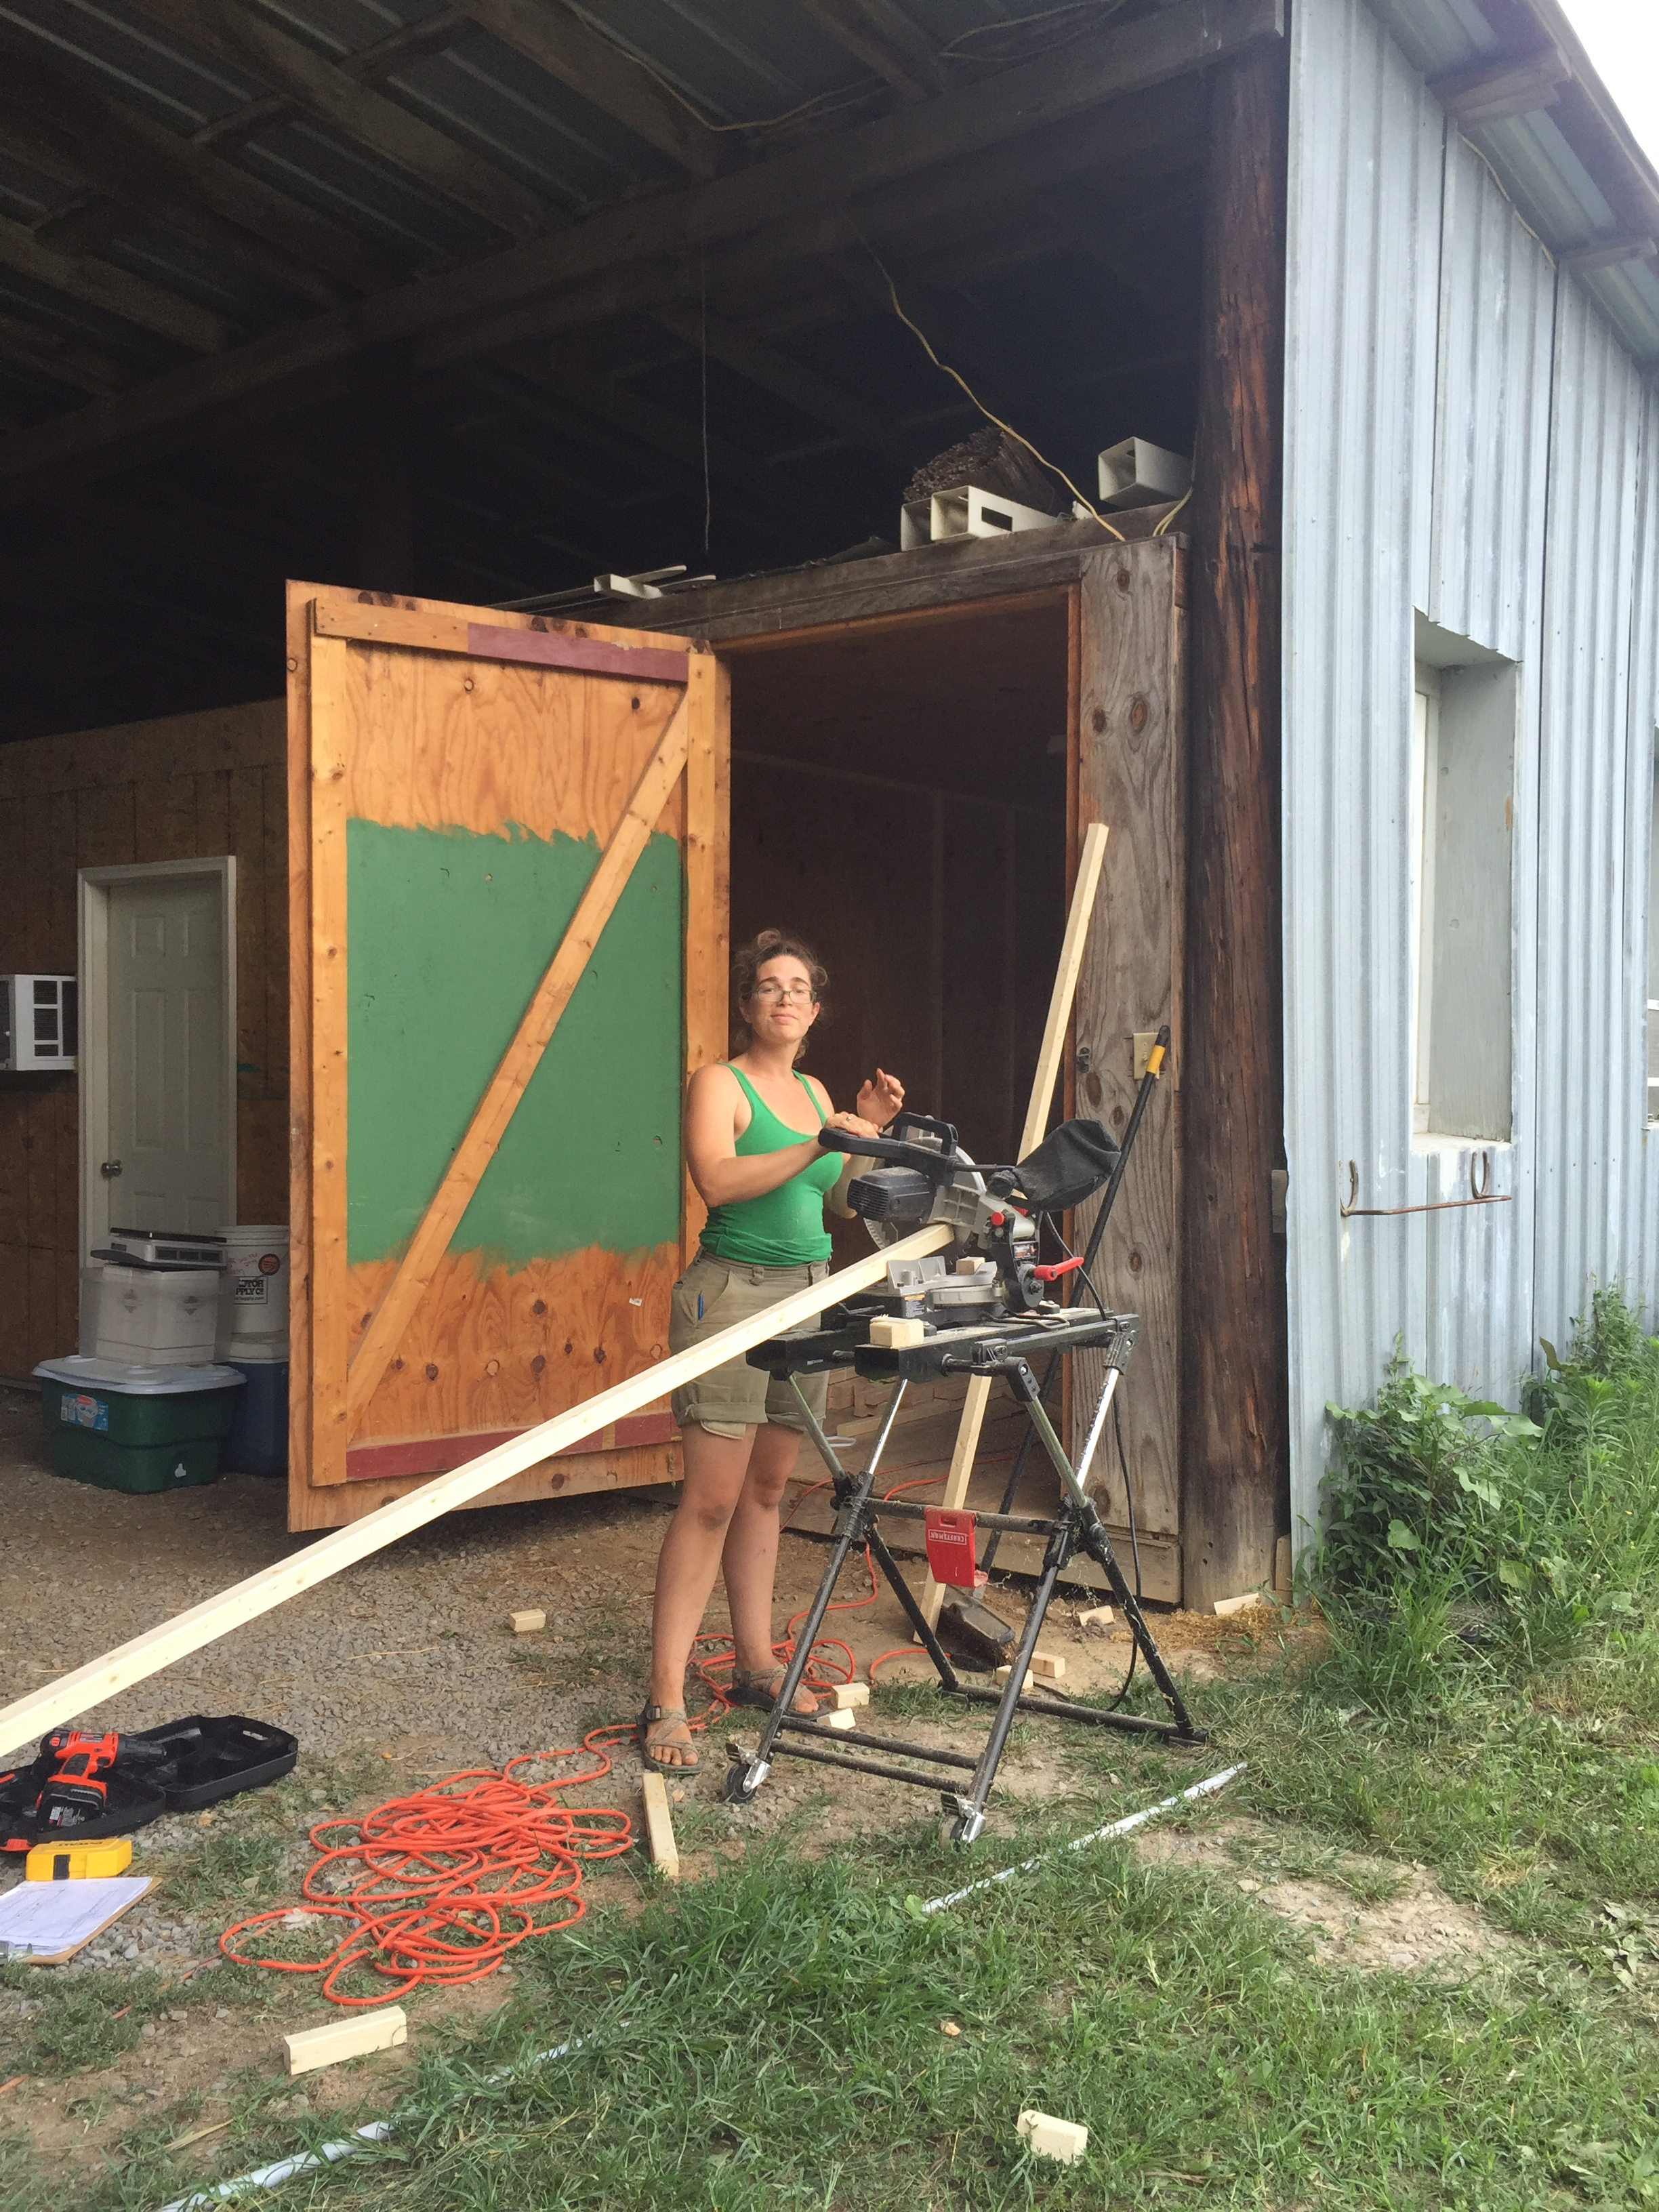 Lizzie sawing up 2x2s for the tack room renovation project!